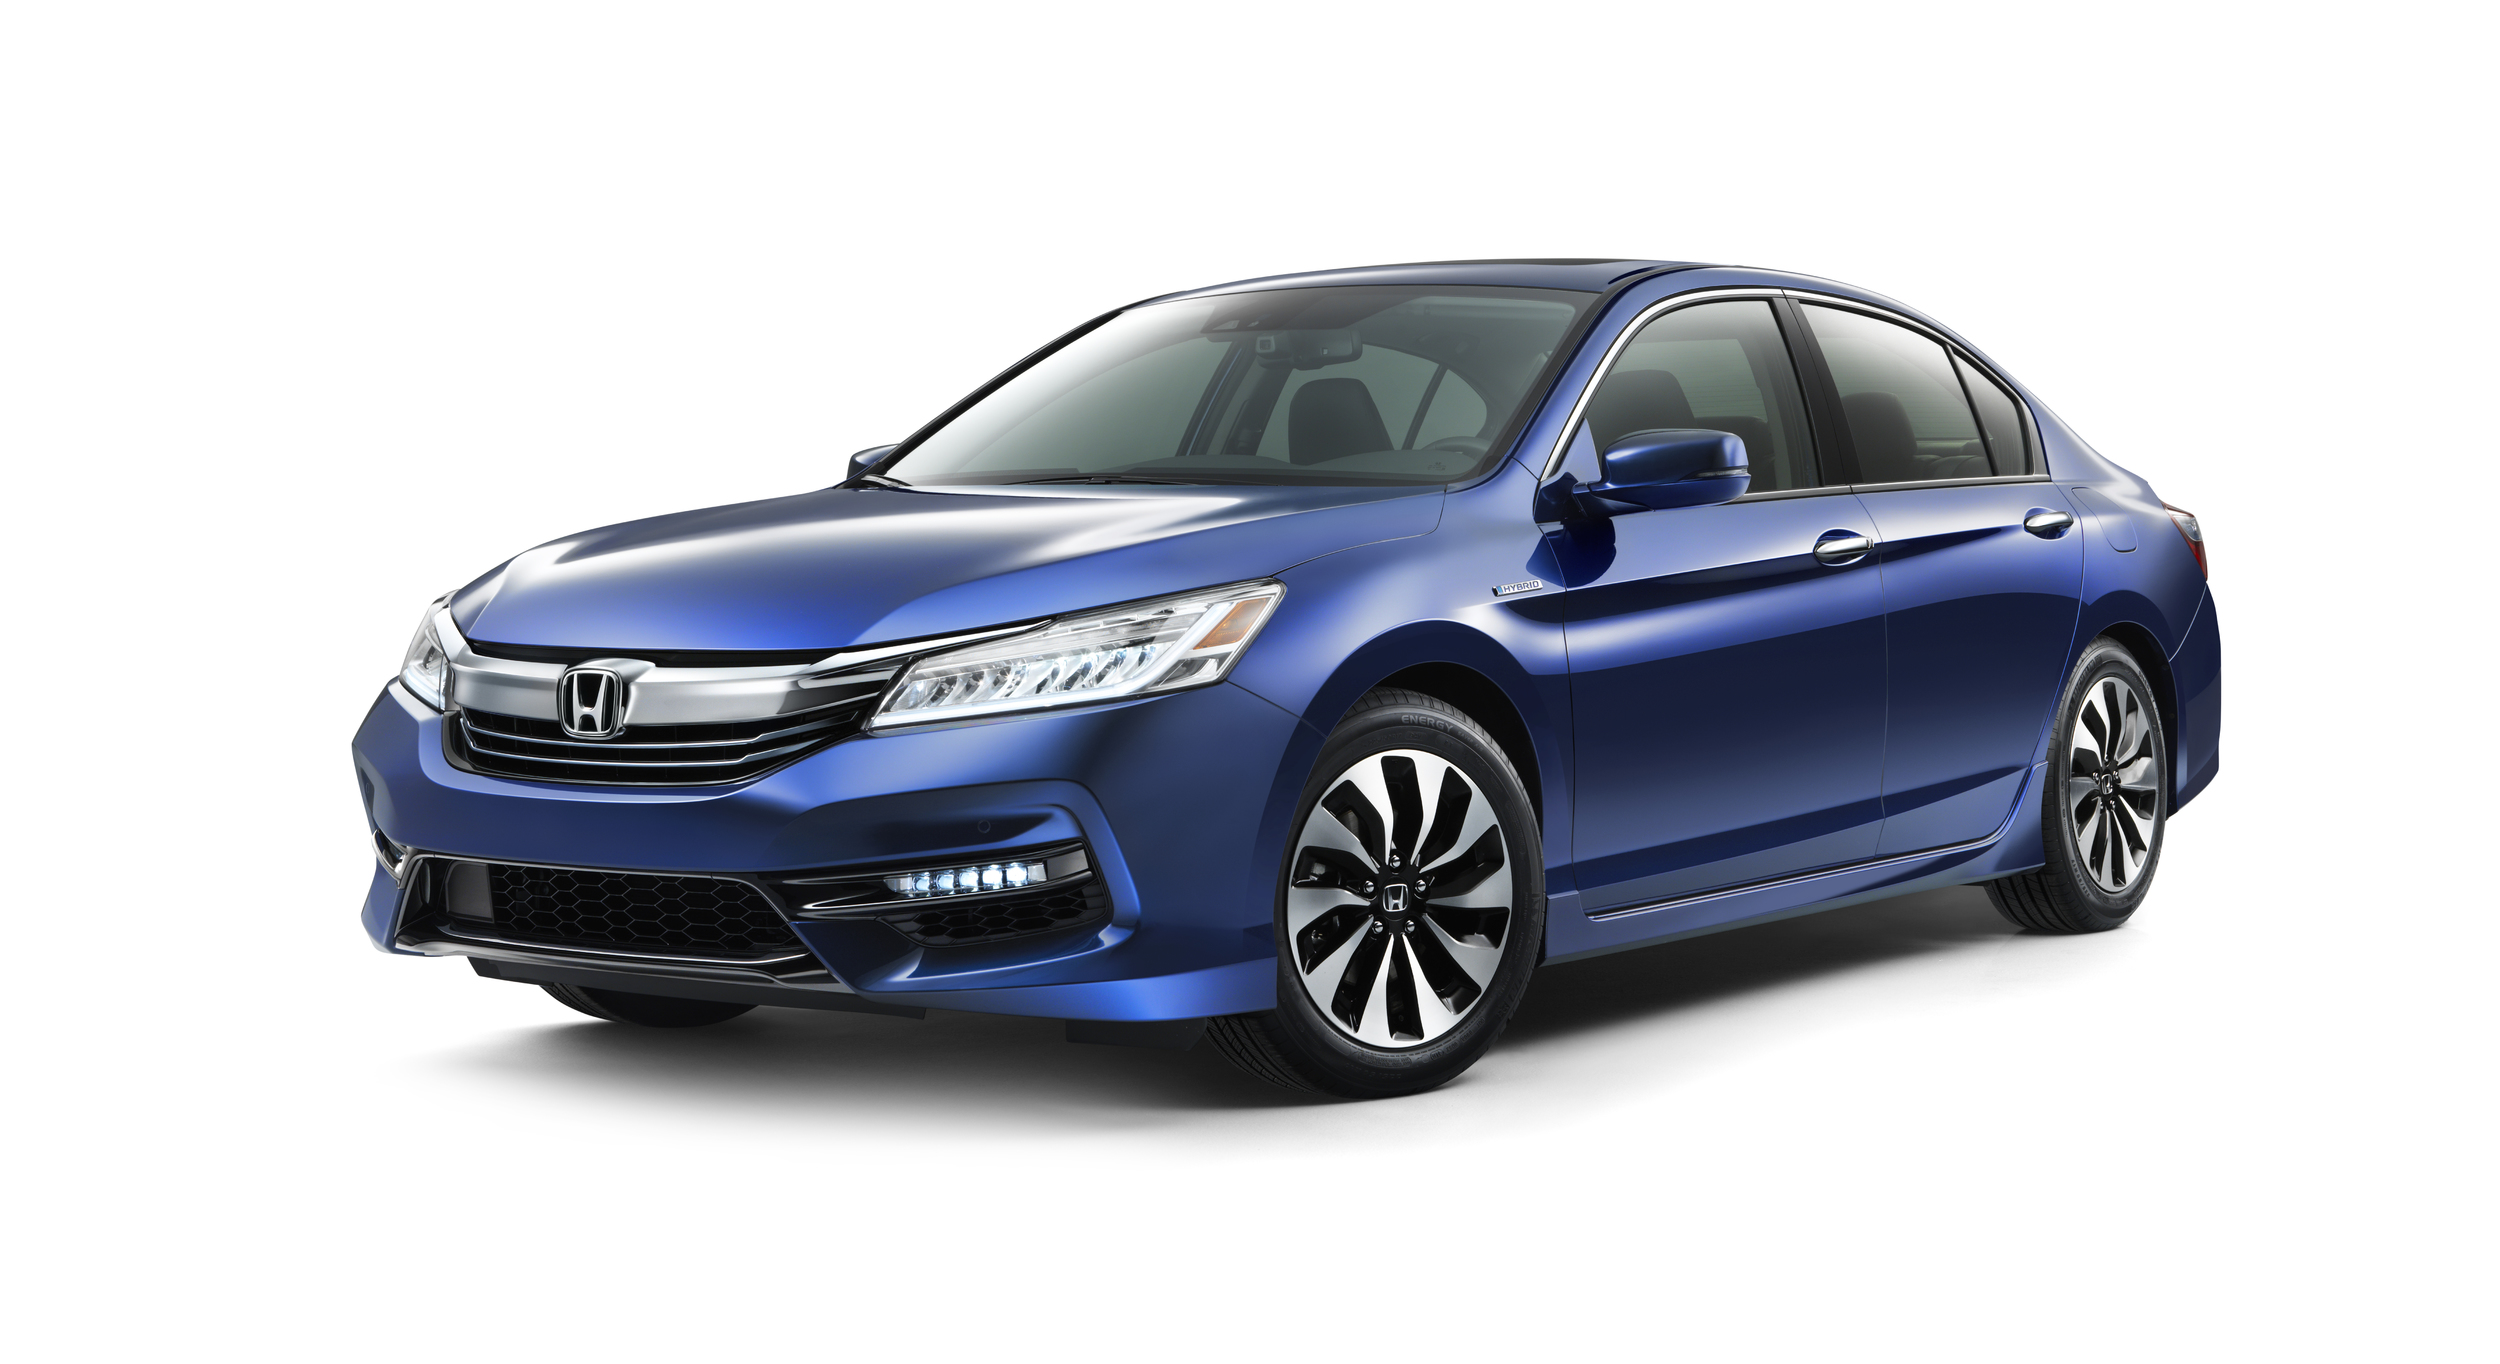 2017 honda accord hybrid tops segment with 49 mpg city. Black Bedroom Furniture Sets. Home Design Ideas